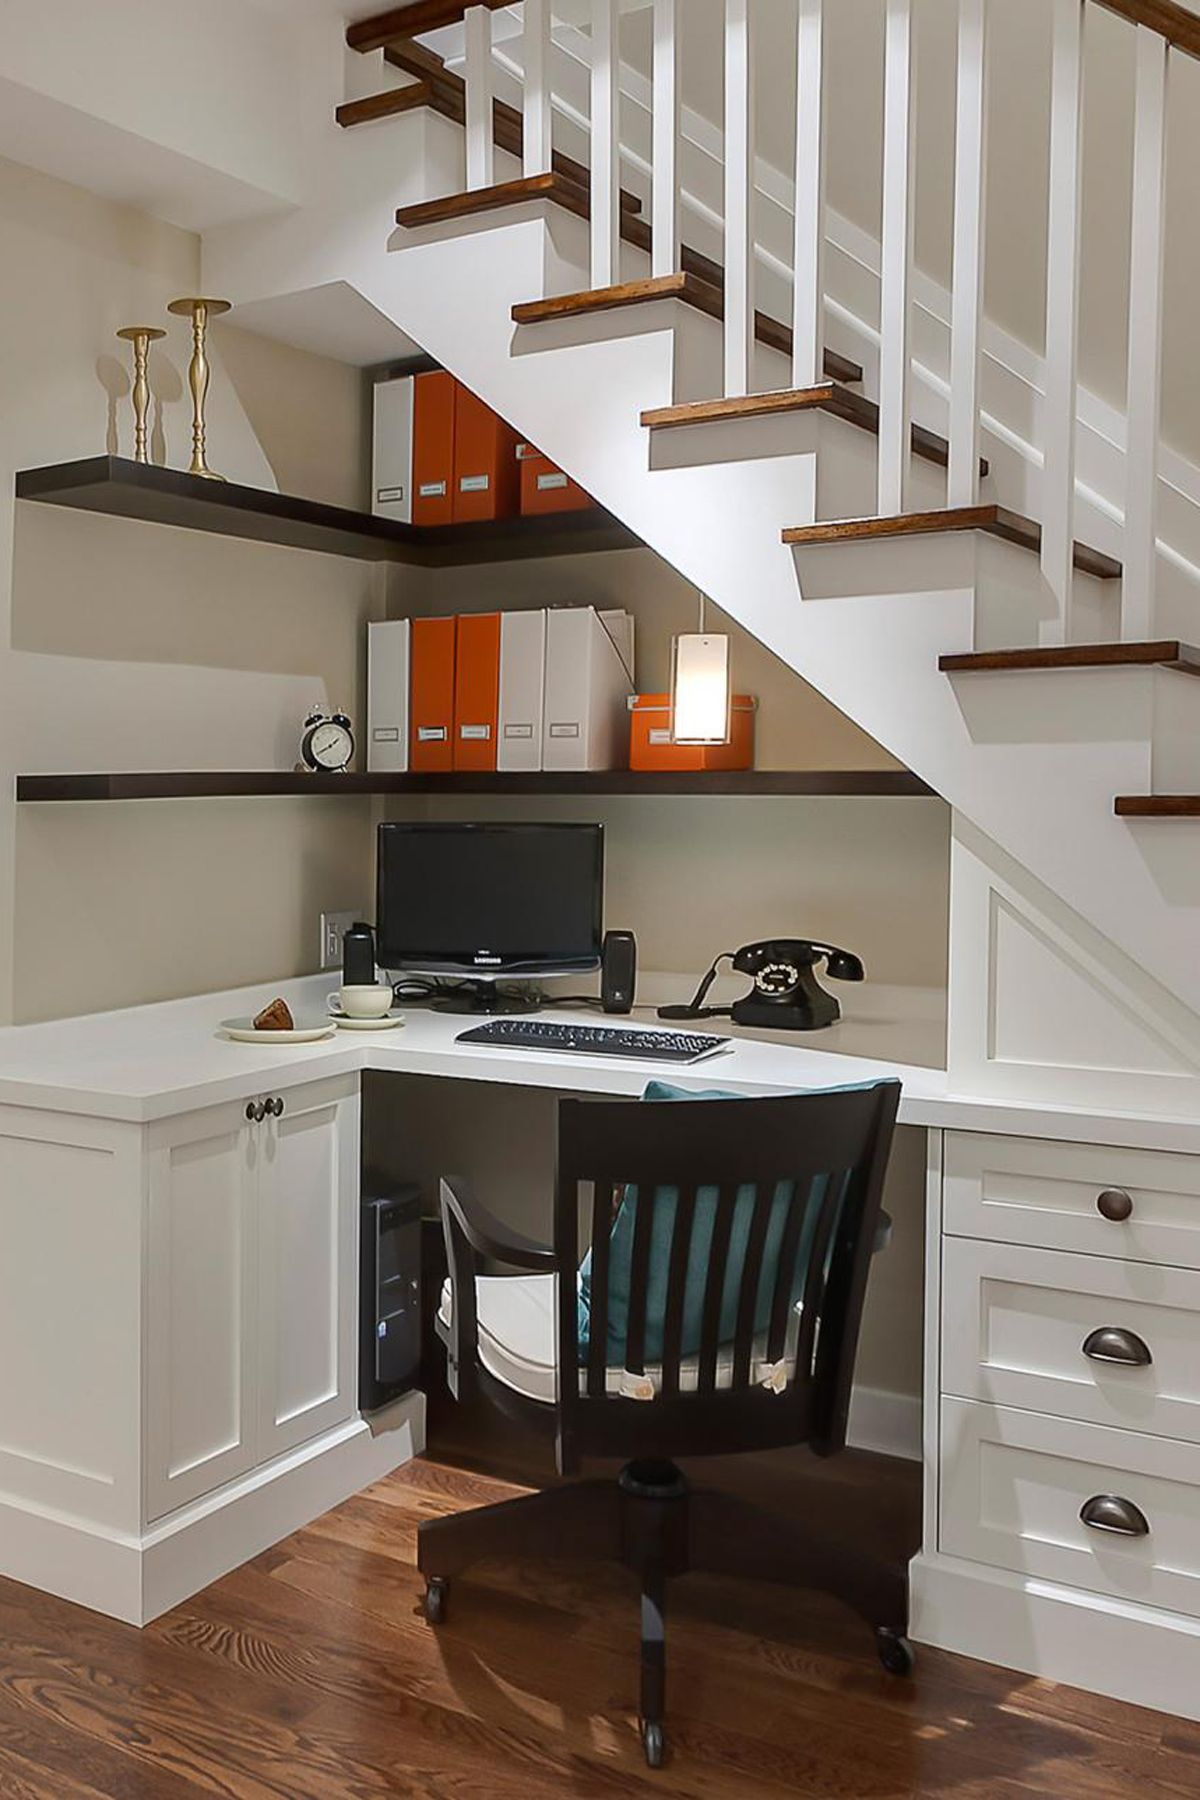 15 Genius Under Stairs Storage Ideas What To Do With Empty Space